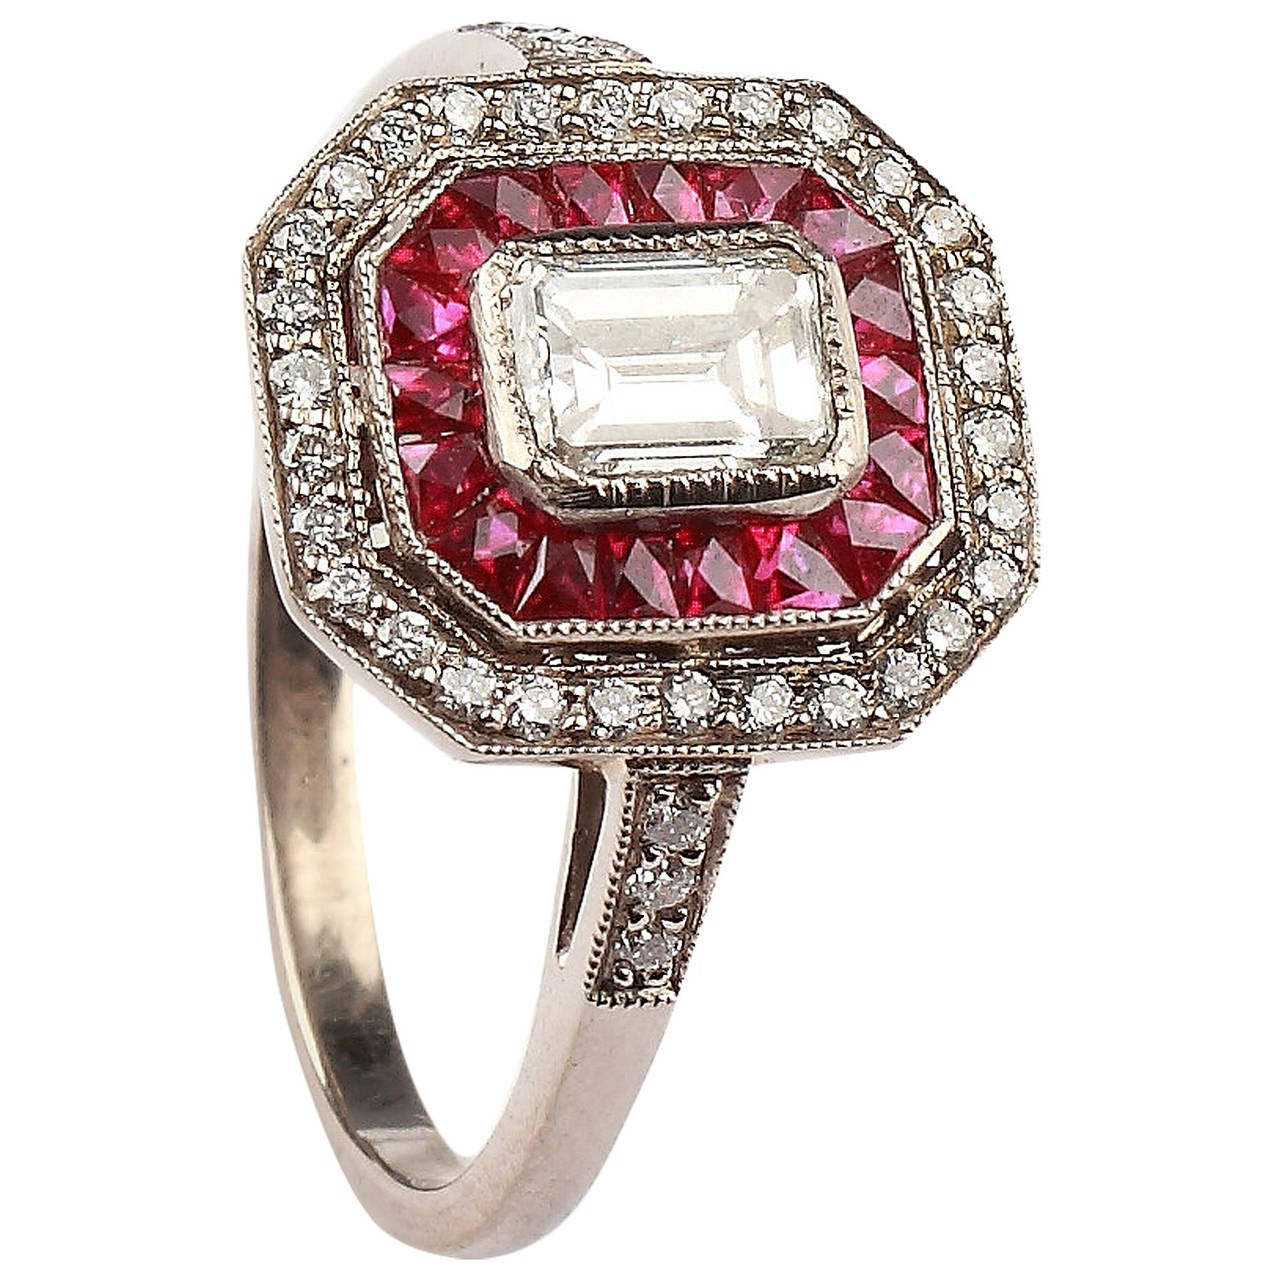 A Fine Ruby Diamond Cluster Ring 1